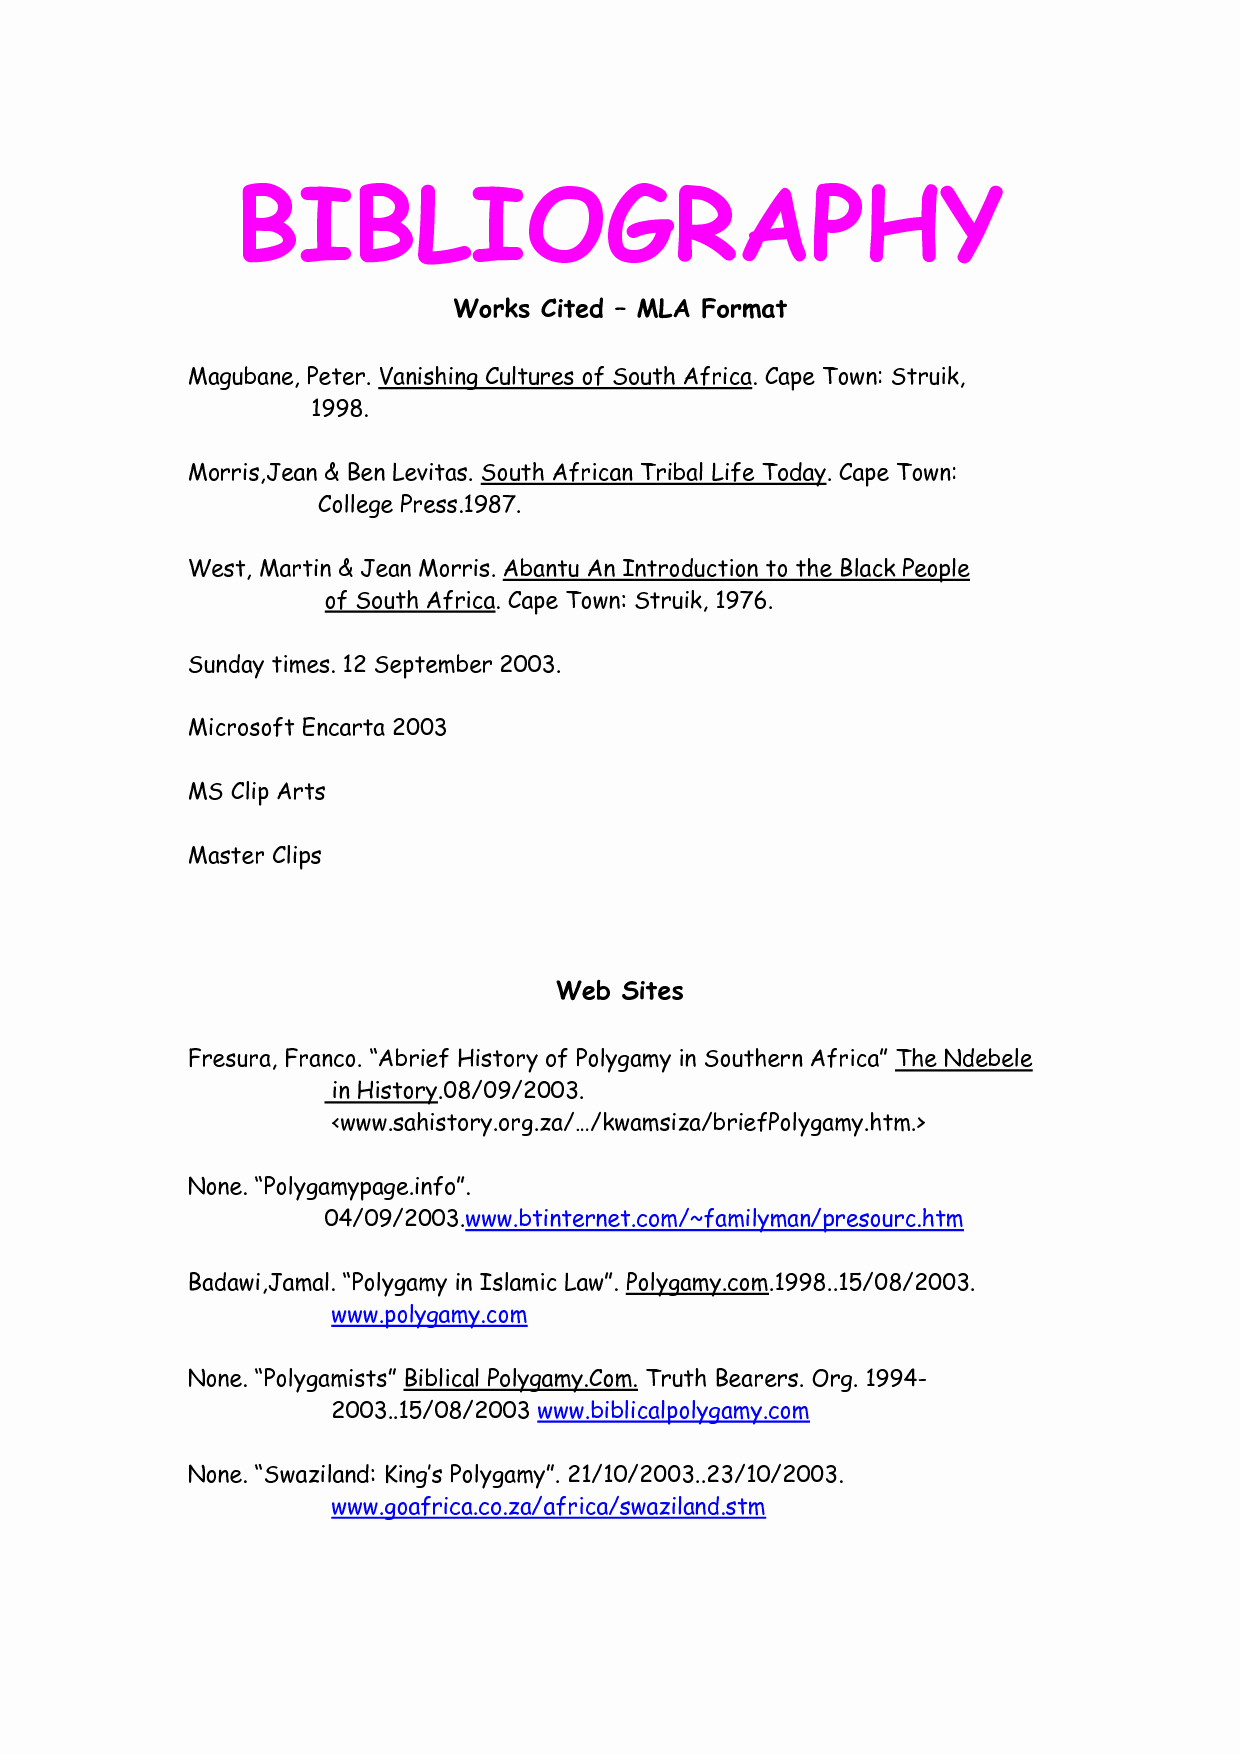 Mla Works Cited Page Template Fresh Mla format Works Cited Template for My Class